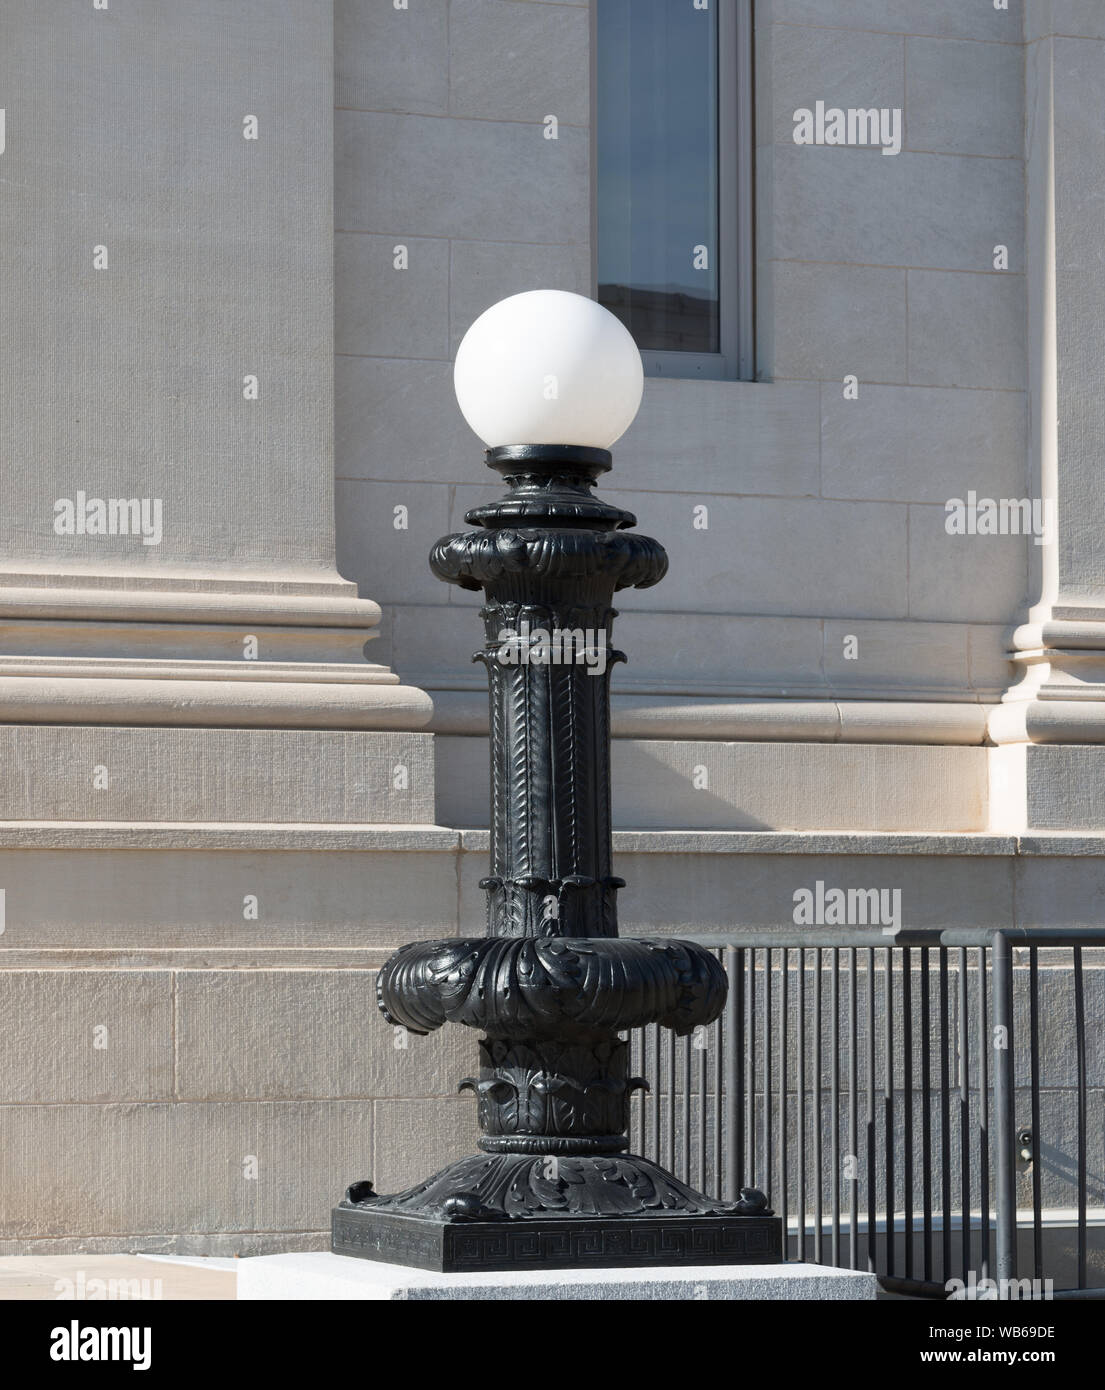 Exterior light fixture at the Ed Edmondson Courthouse, also known as the U.S. Post Office and Courthouse, occupies an entire block between West Broadway, West Okmulgee Avenues and Fifth Street, Muskogee, Oklahoma Stock Photo